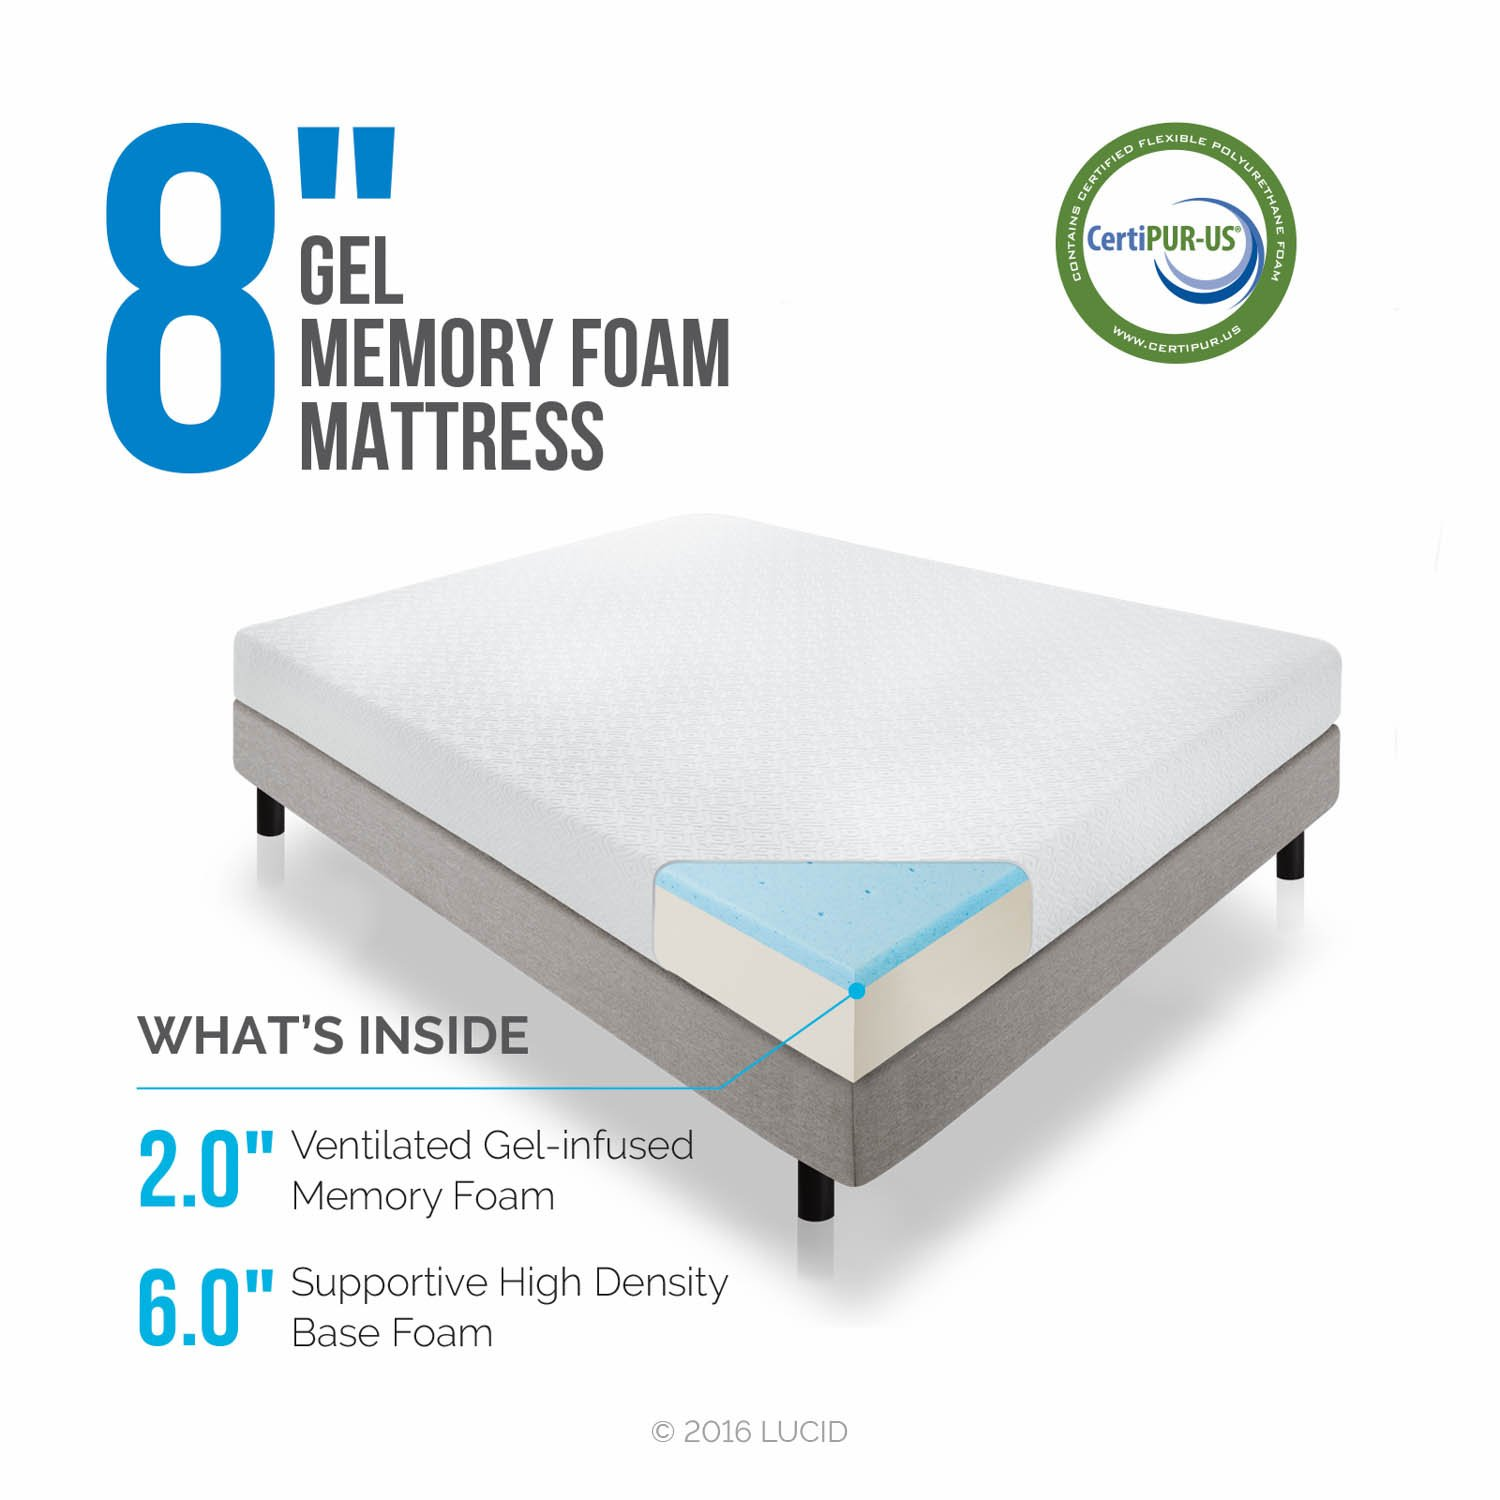 amazoncom lucid 8 inch memory foam mattress duallayered certipurus certified mediumfirm feel queen size kitchen u0026 dining